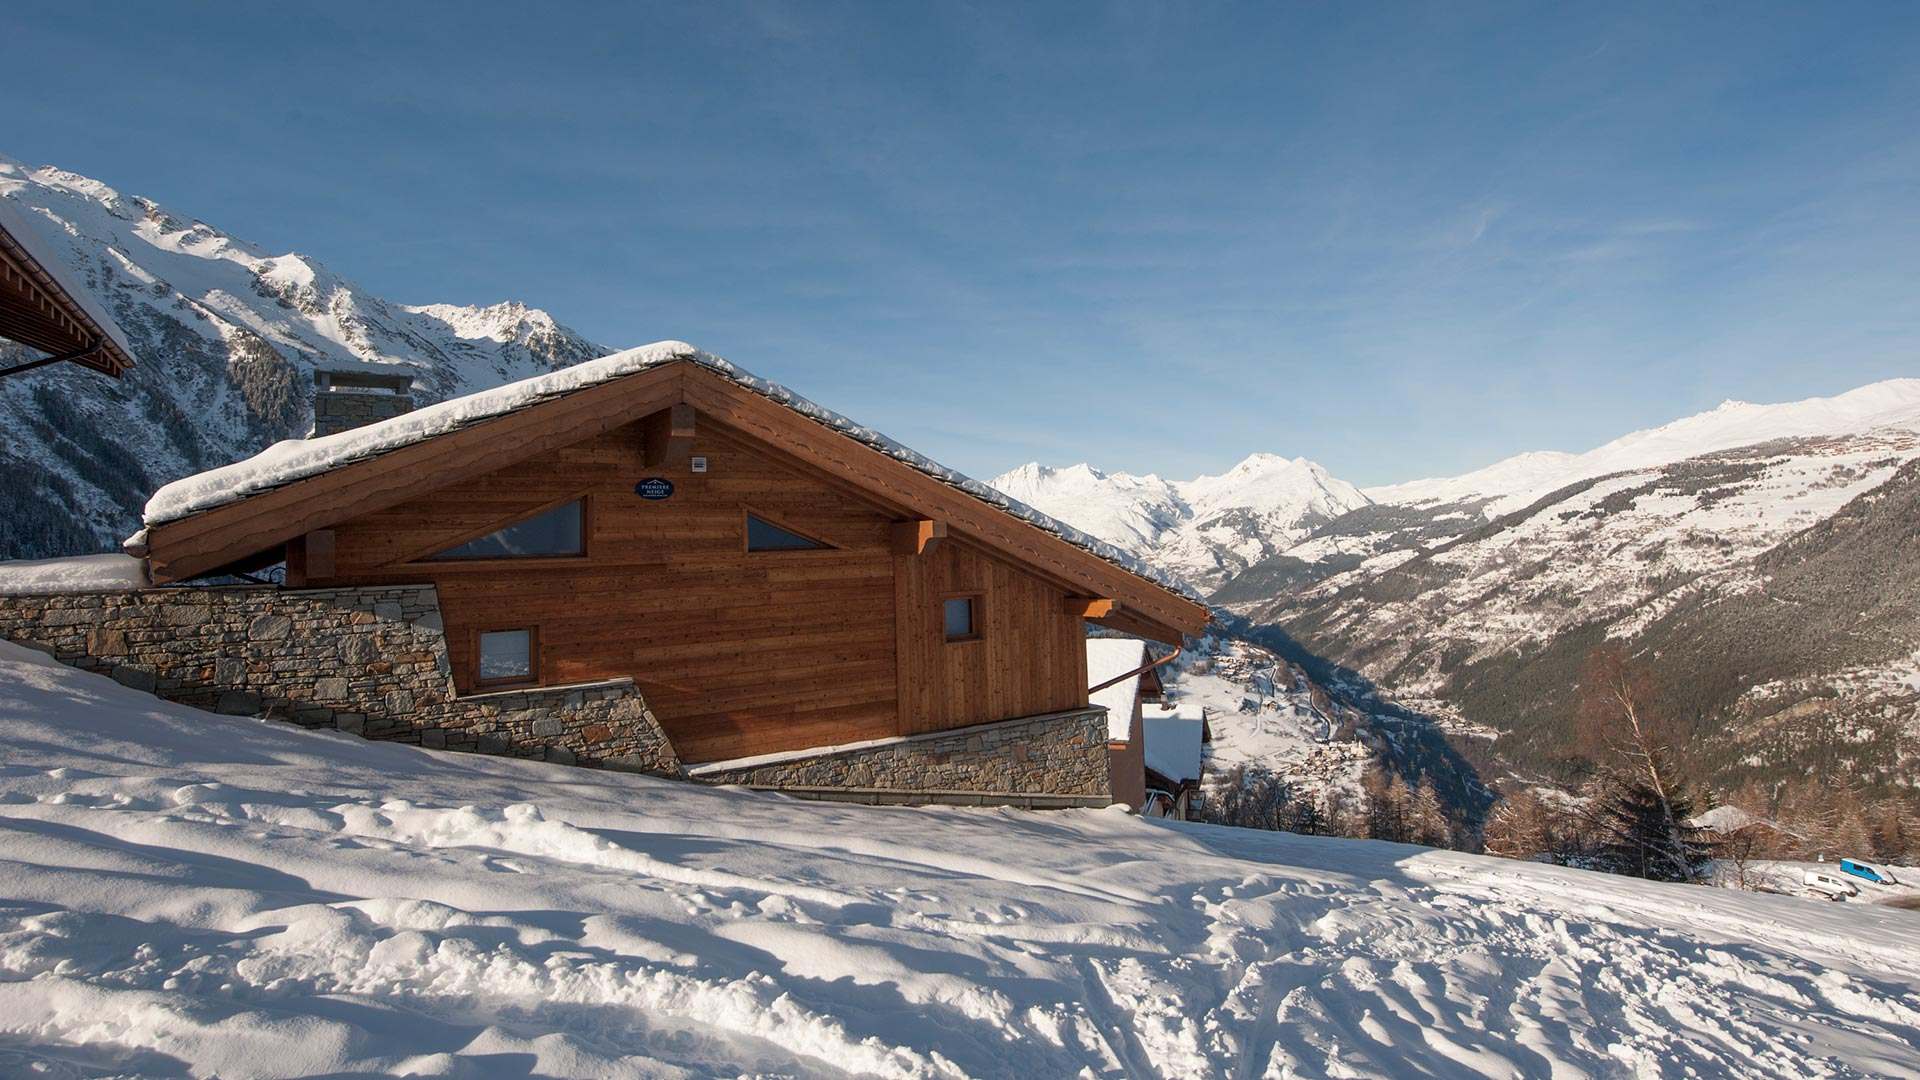 Premiere Neige Self Catered Chalet Margaux in Sainte Foy